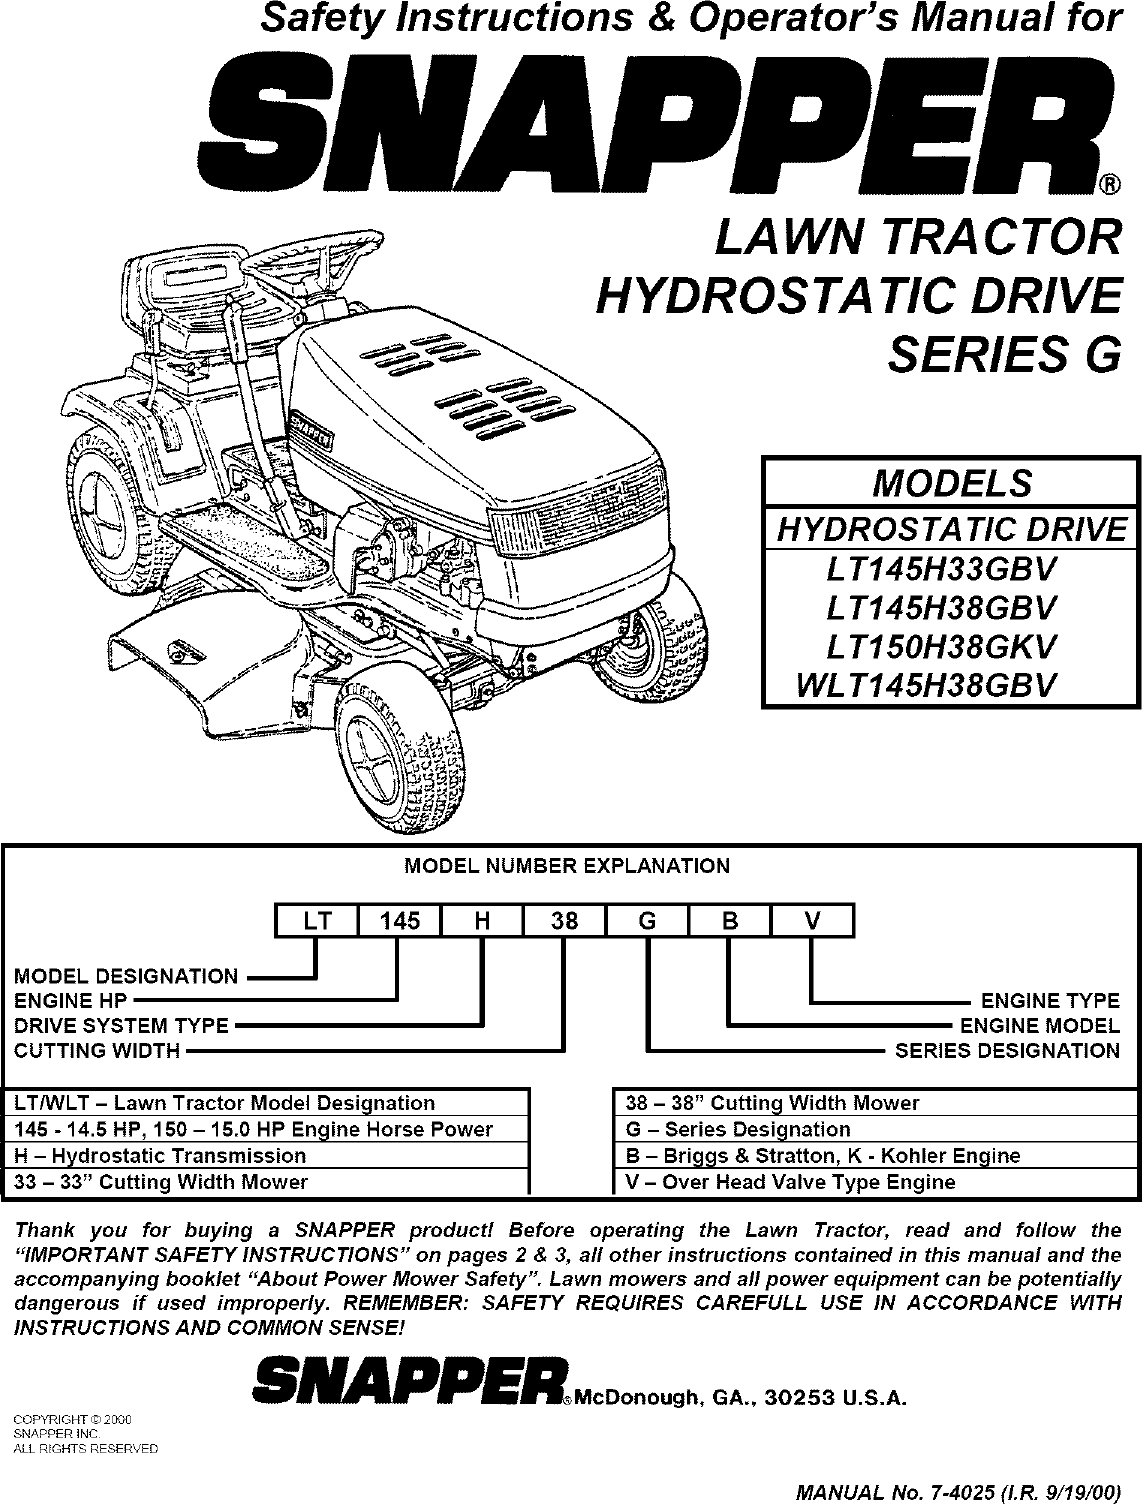 Snapper Lt145h38gbv User Manual Tractor Manuals And Guides L0808165 Have A 145 Horsepower Briggs Stratton Engine That Was